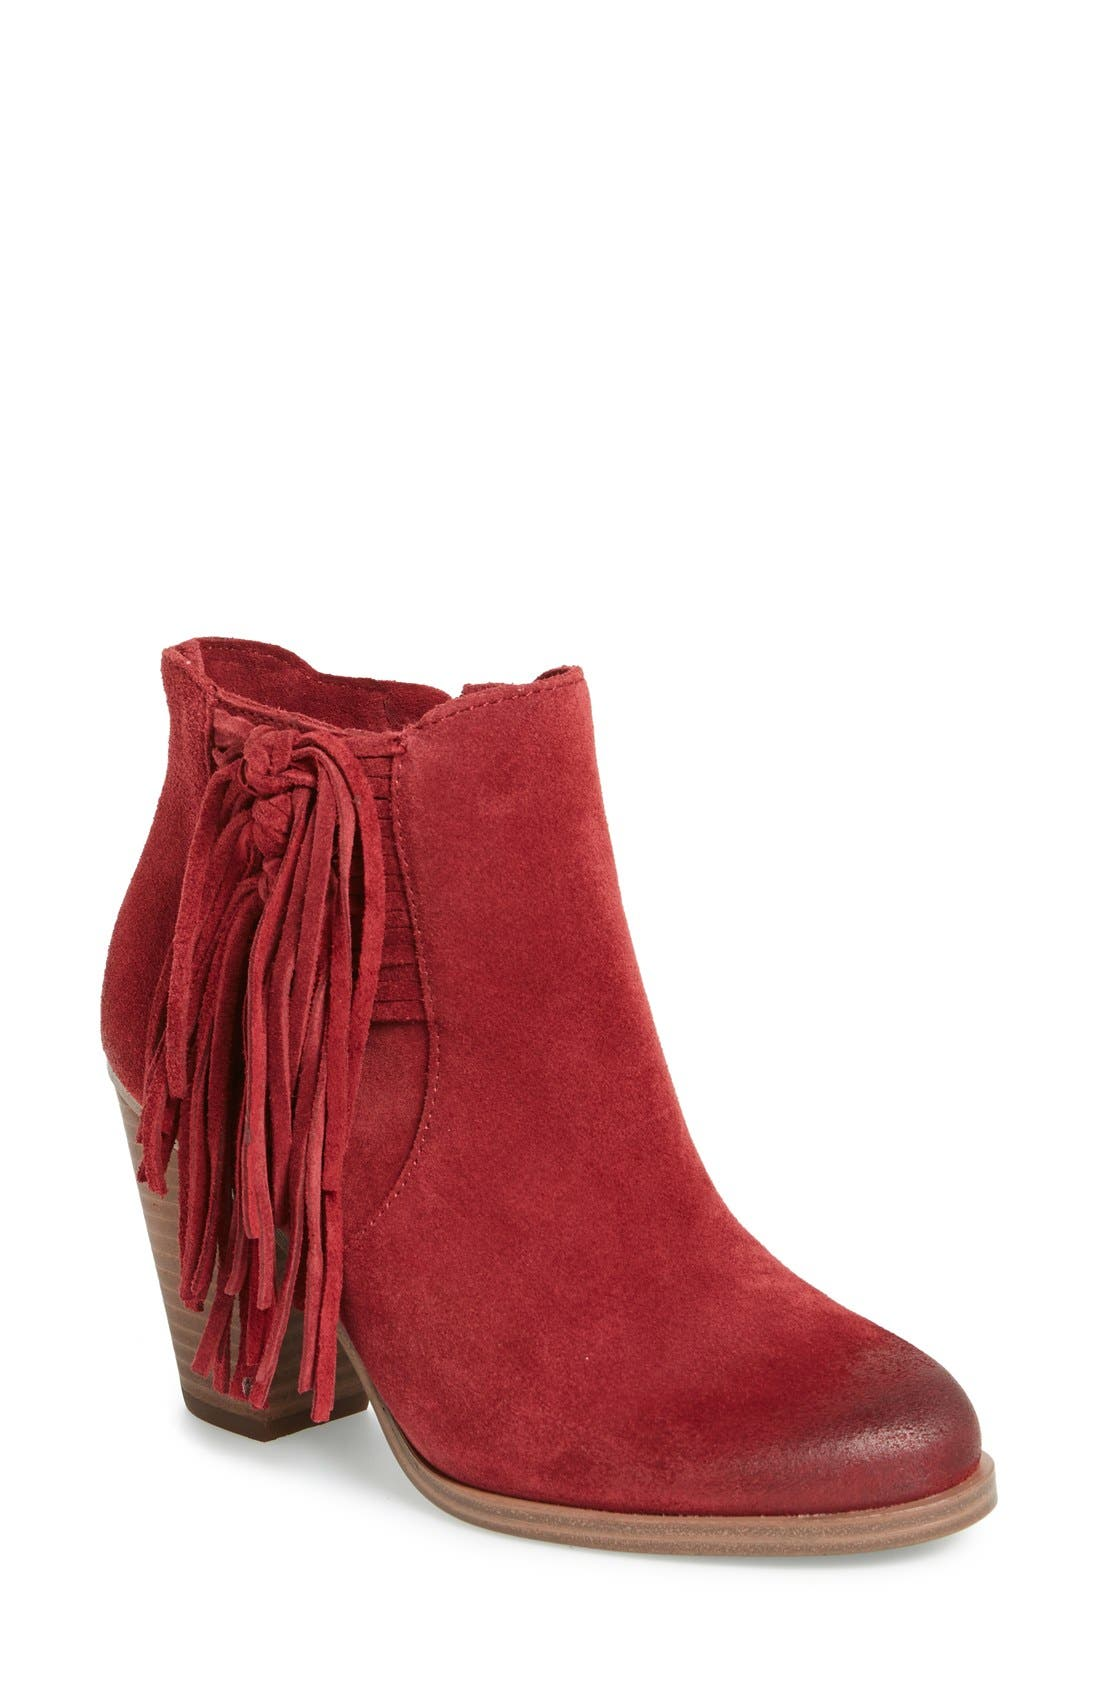 Main Image - Vince Camuto 'Harlin' Fringe Bootie (Women)